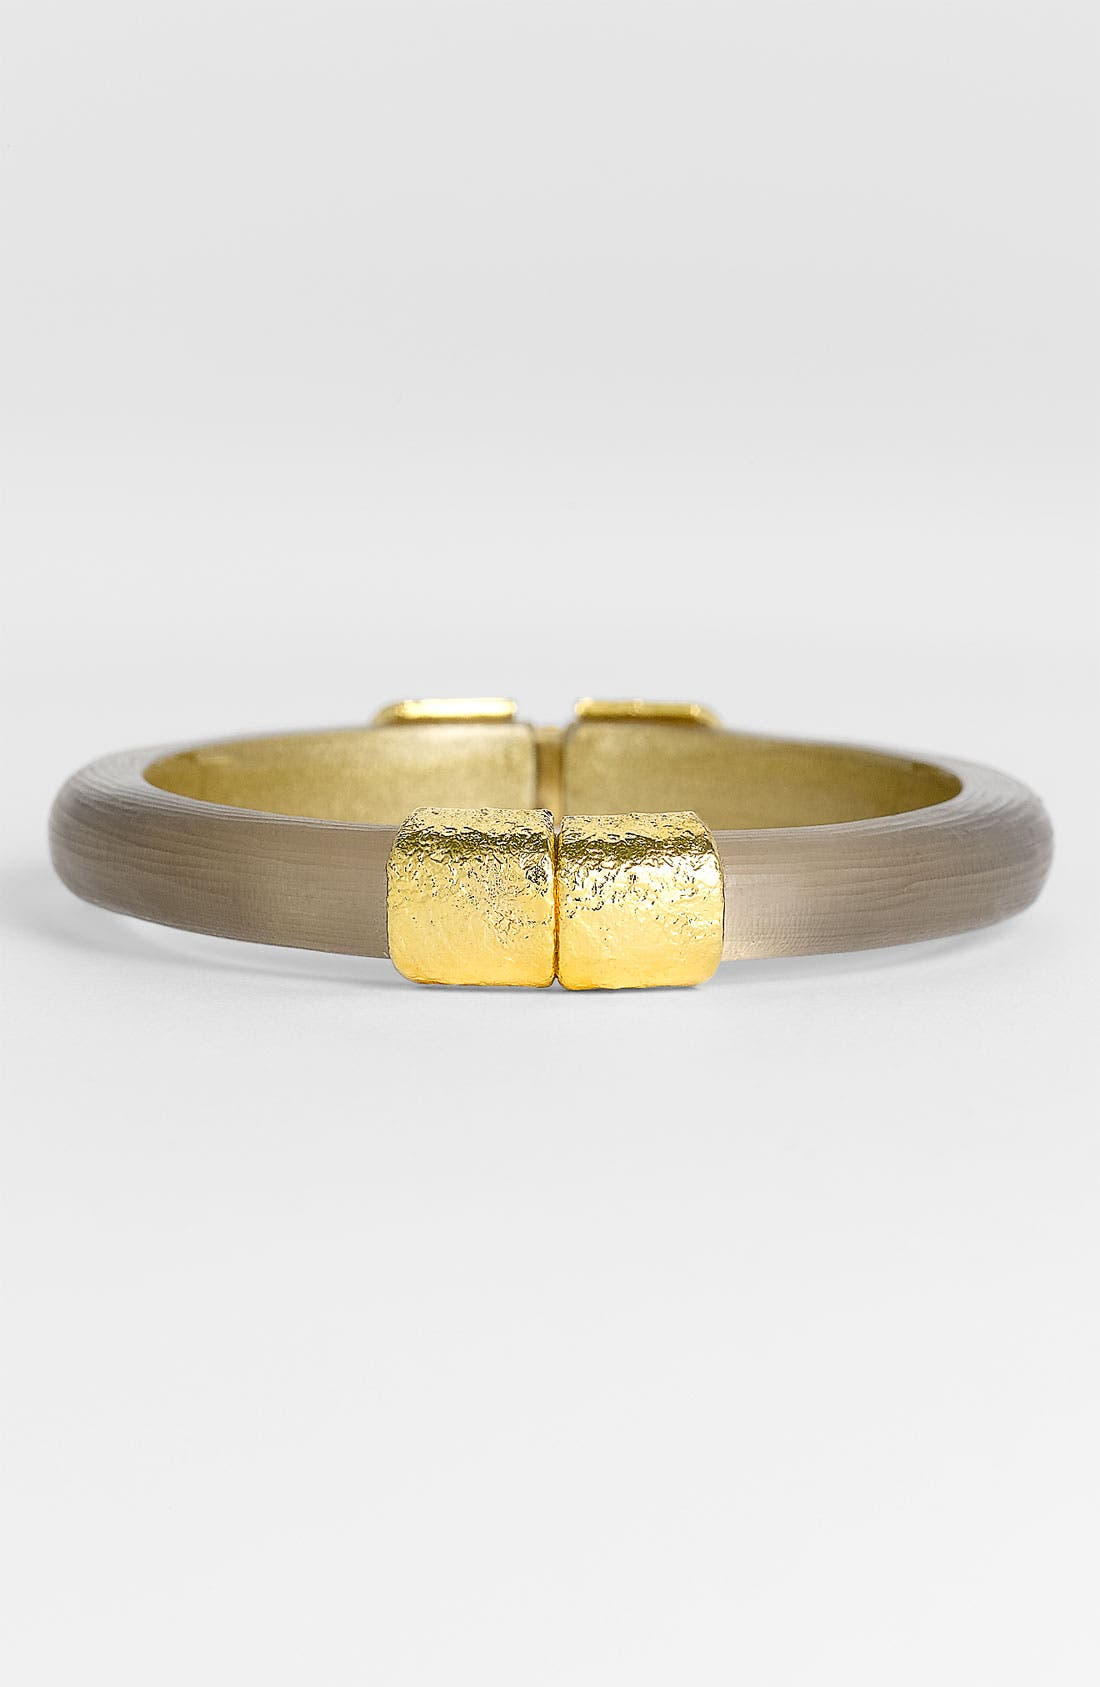 Alternate Image 1 Selected - Alexis Bittar 'Lucite®' Small Hinged Bracelet